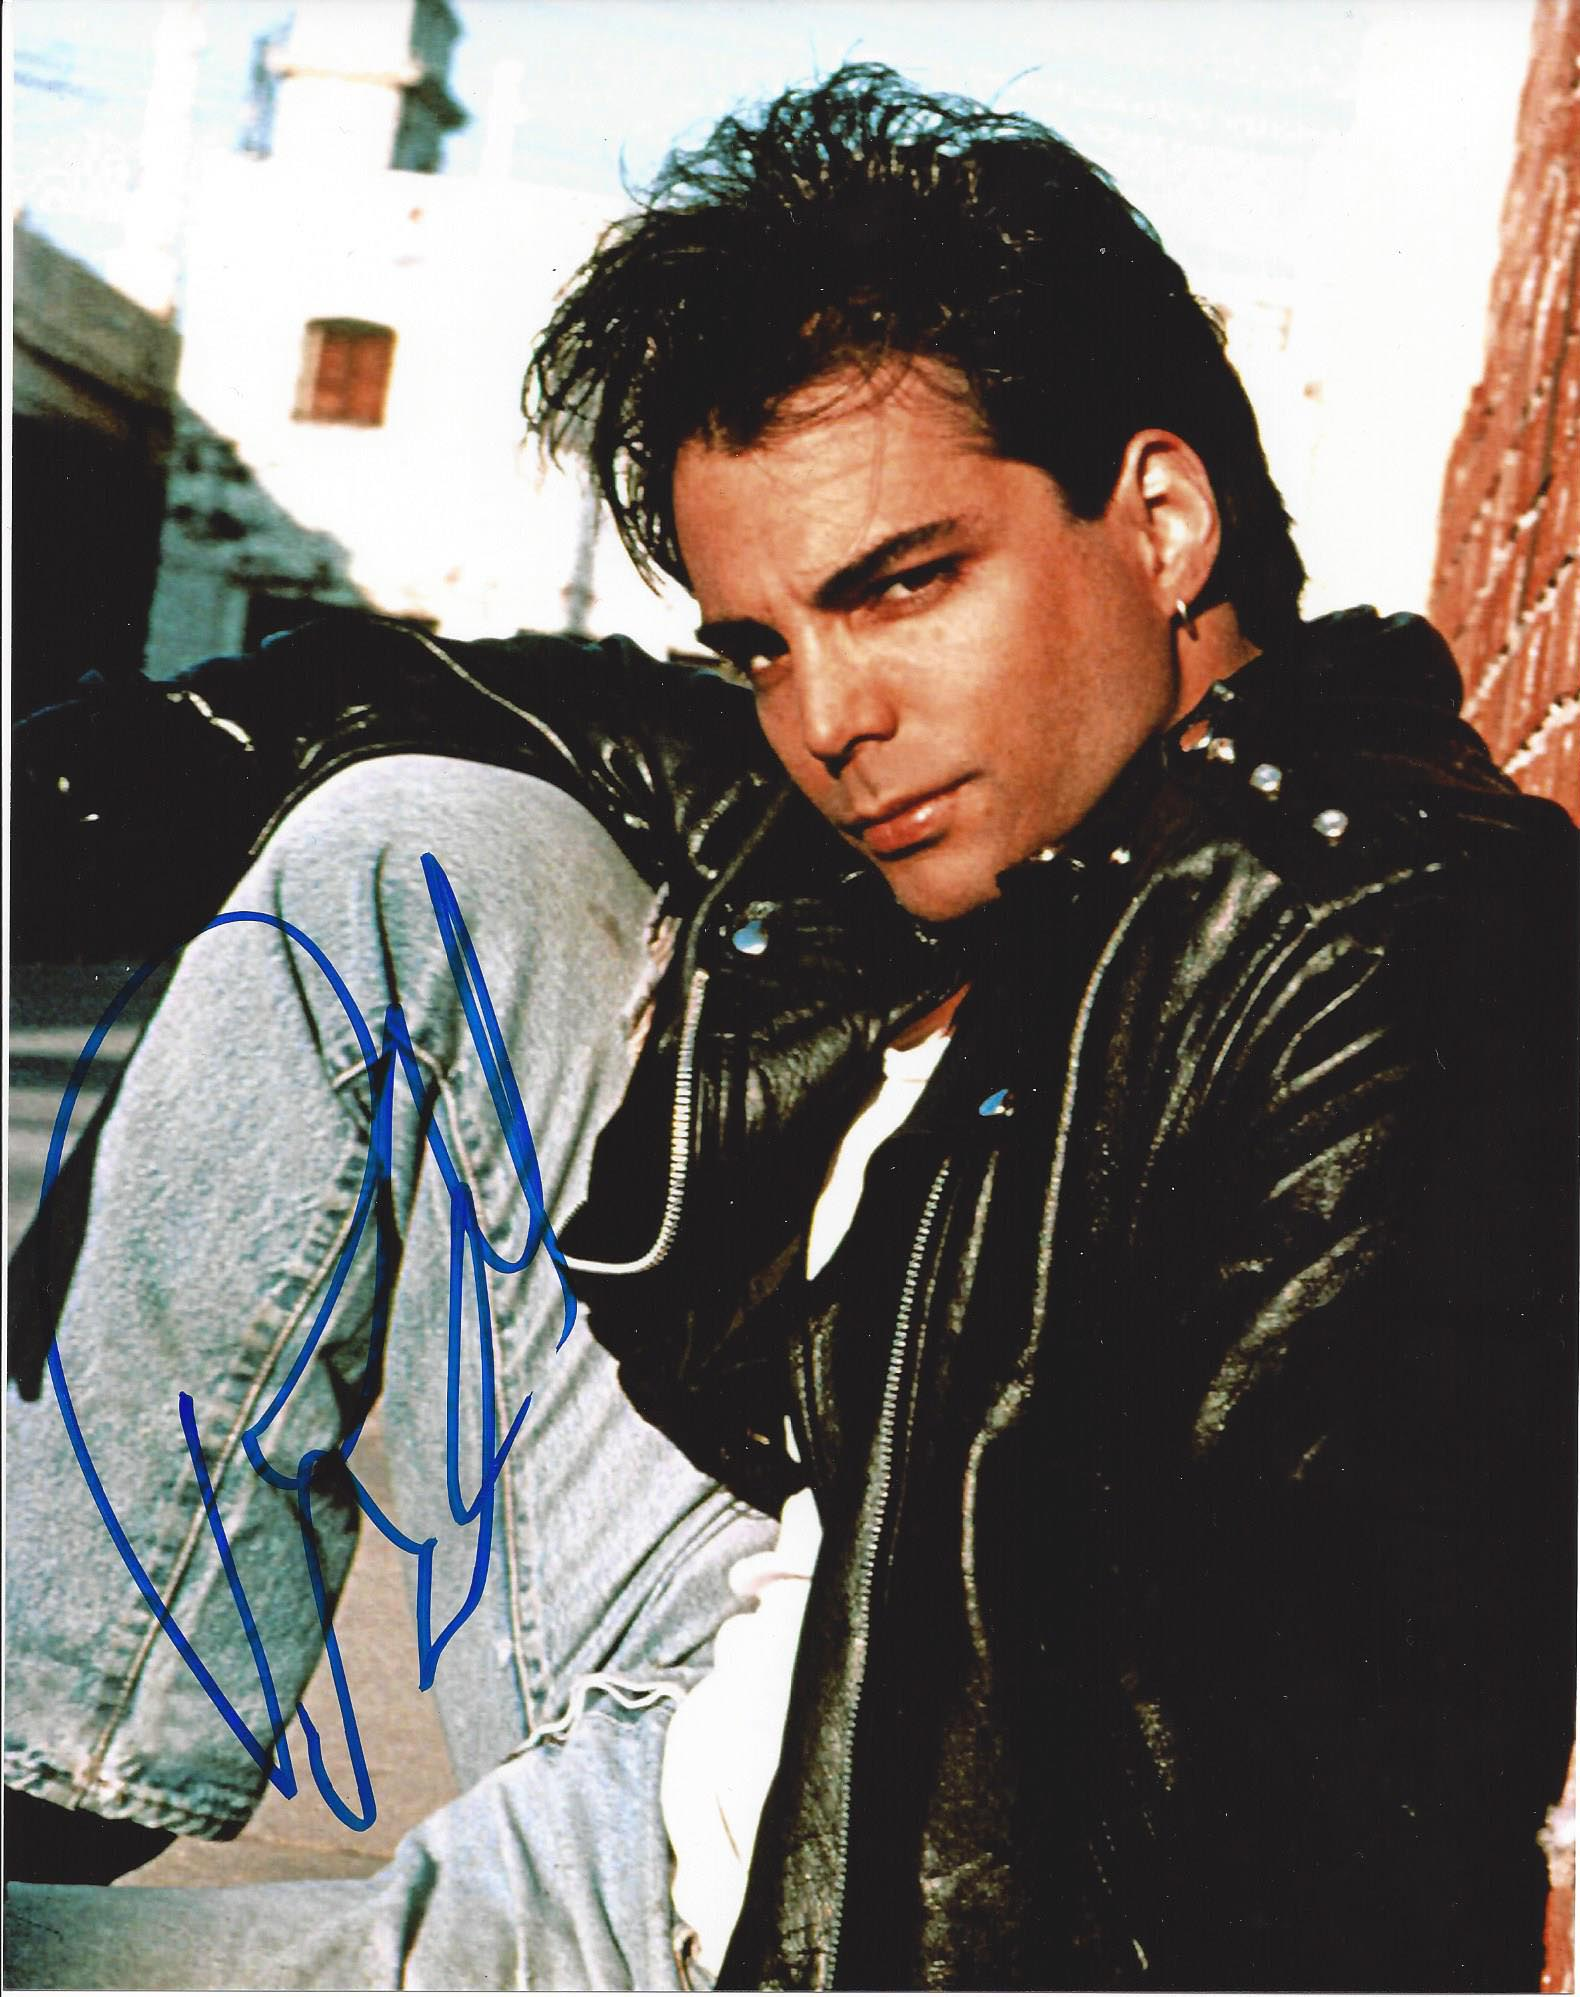 Richard Grieco 21 Jumpstreet Signed 8x10 Photo Fanboy Expo Store